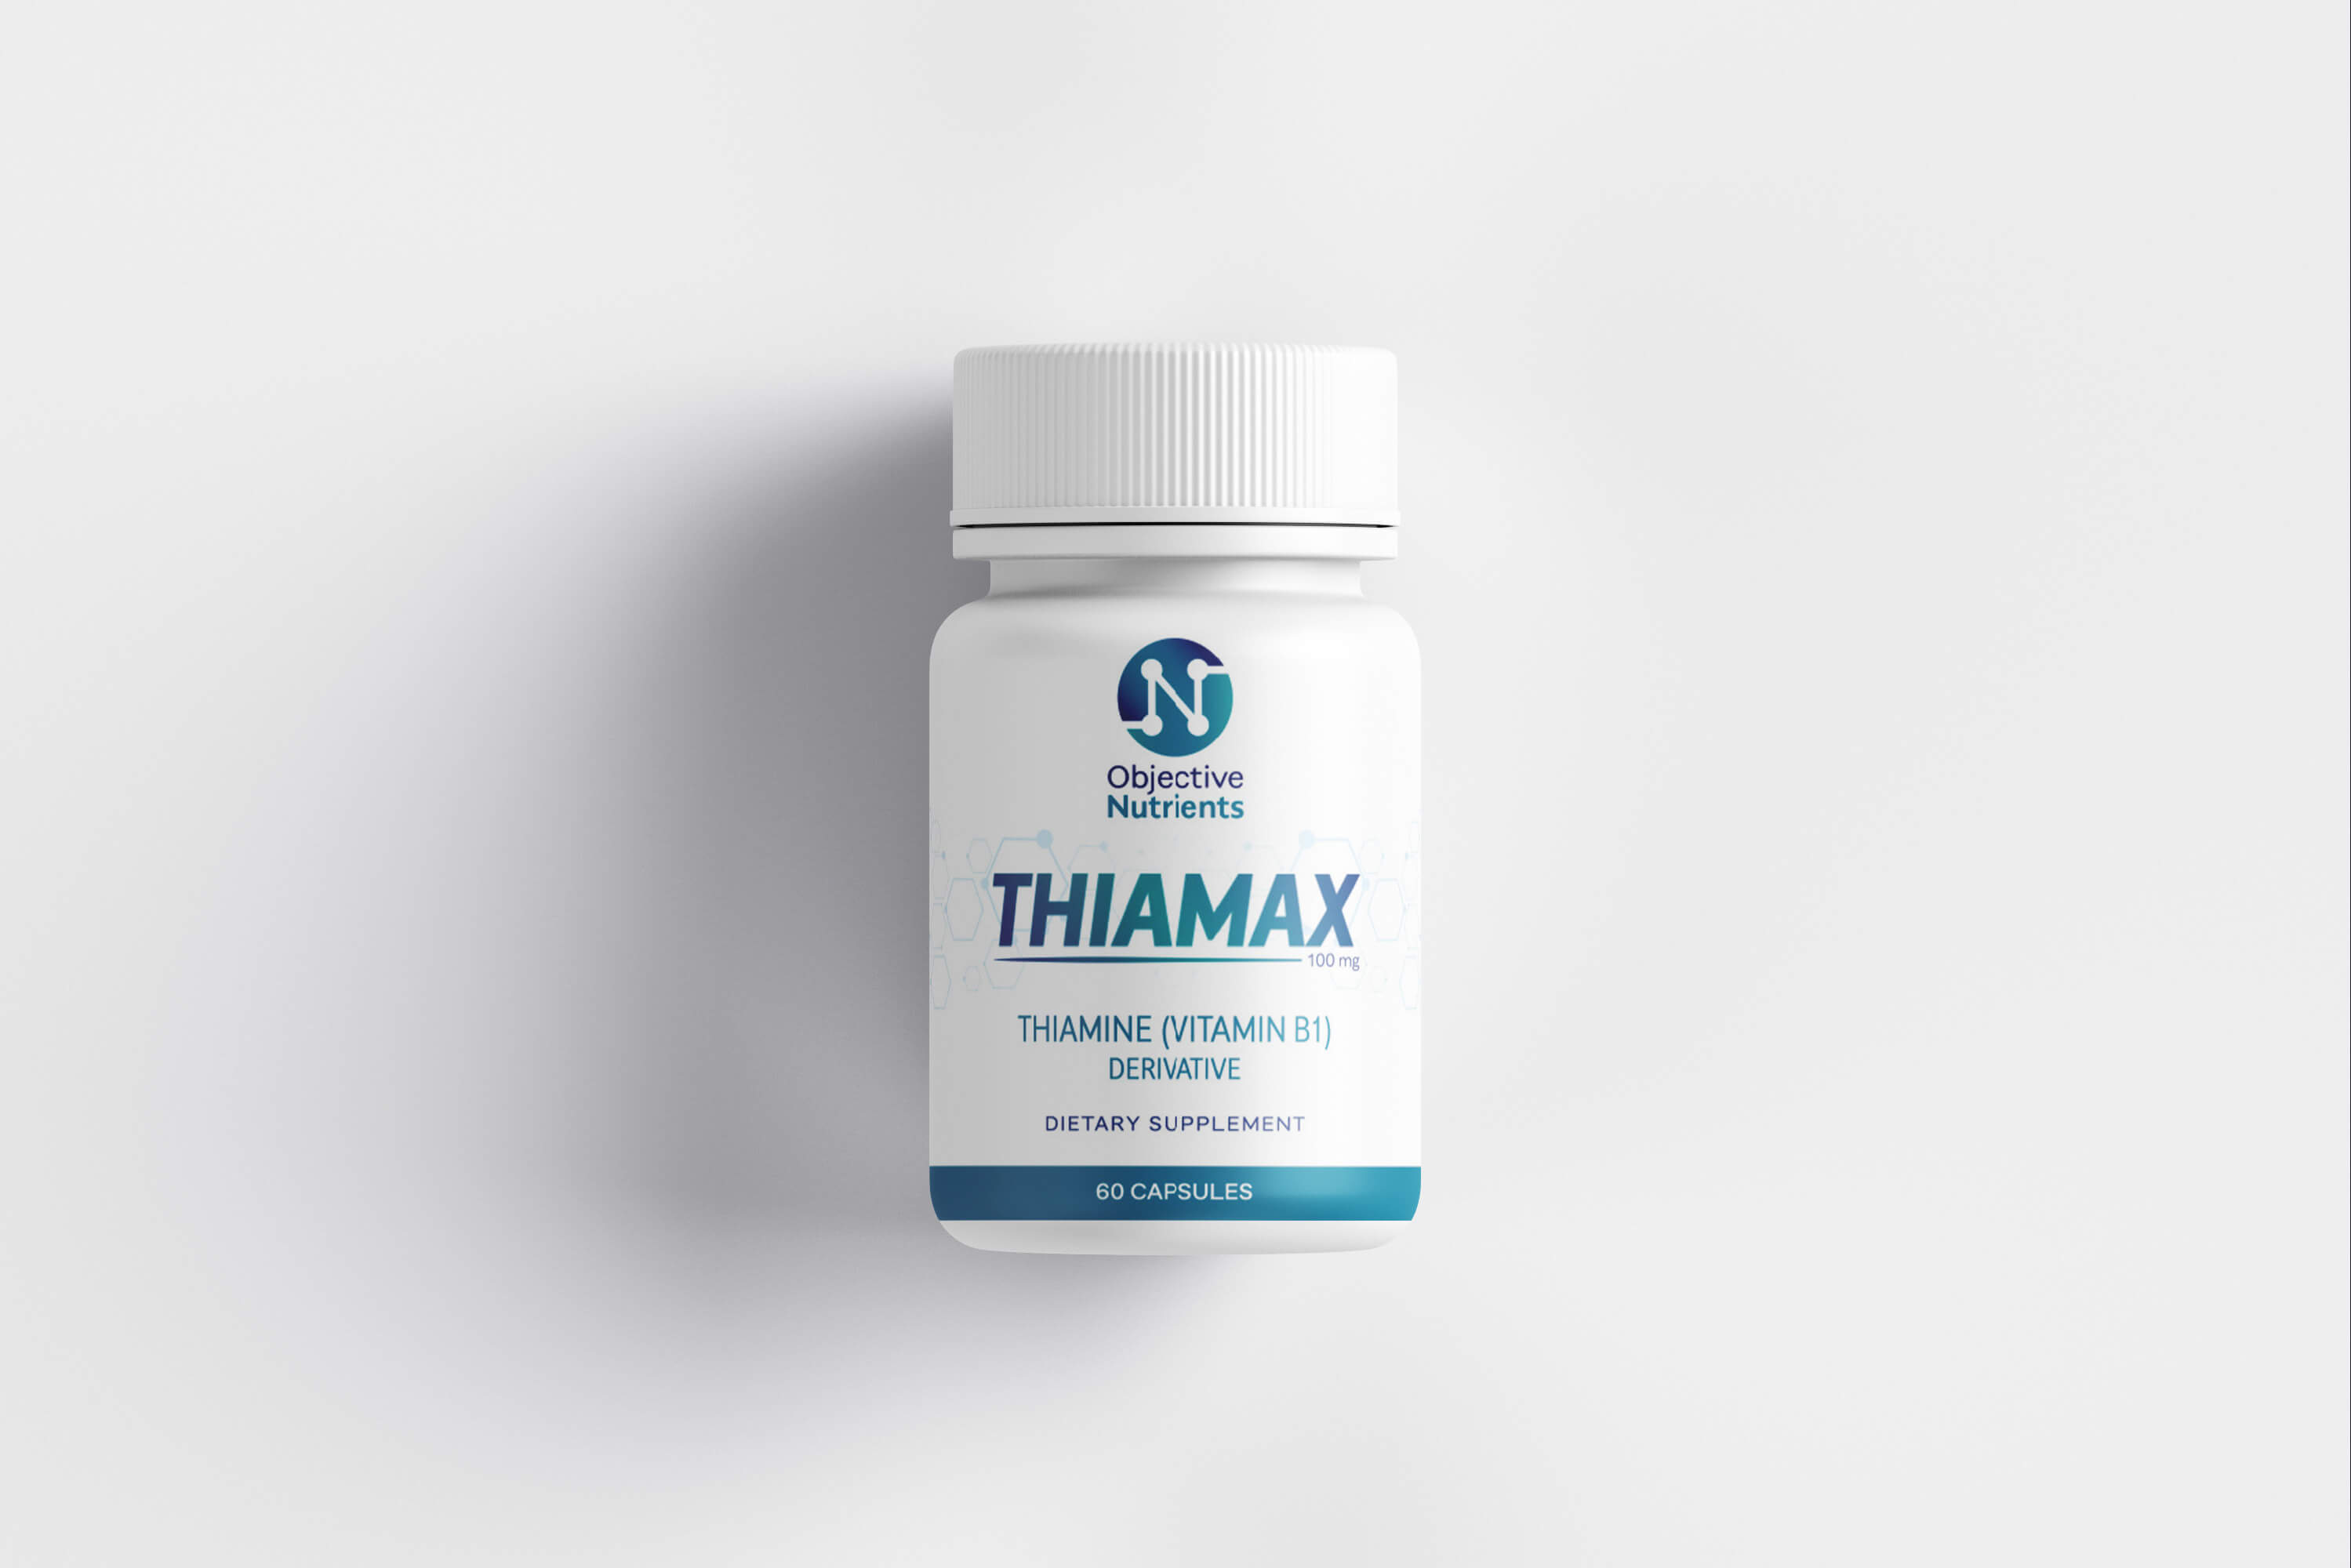 Bottle of Thiamax front view